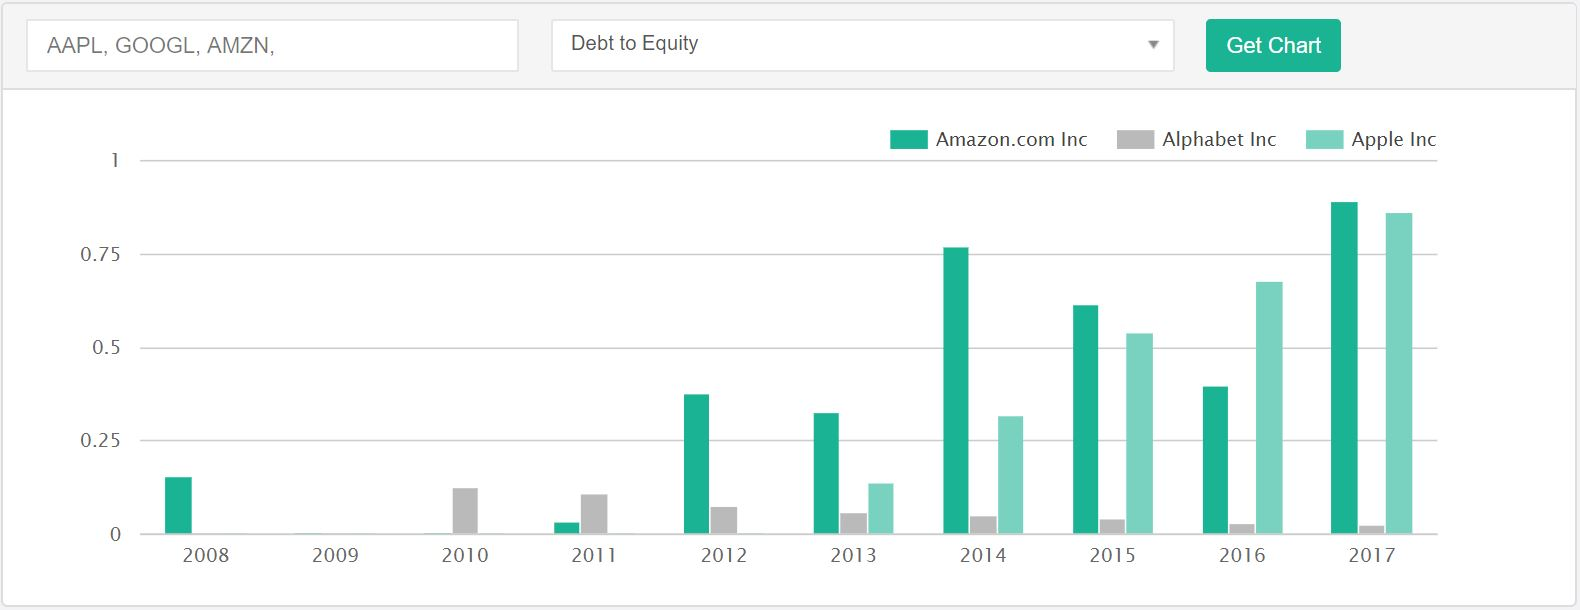 Comparison between Apple Inc., Google and Amazon's debt to equity ratio using the DiscoverCI.com Charting Tool